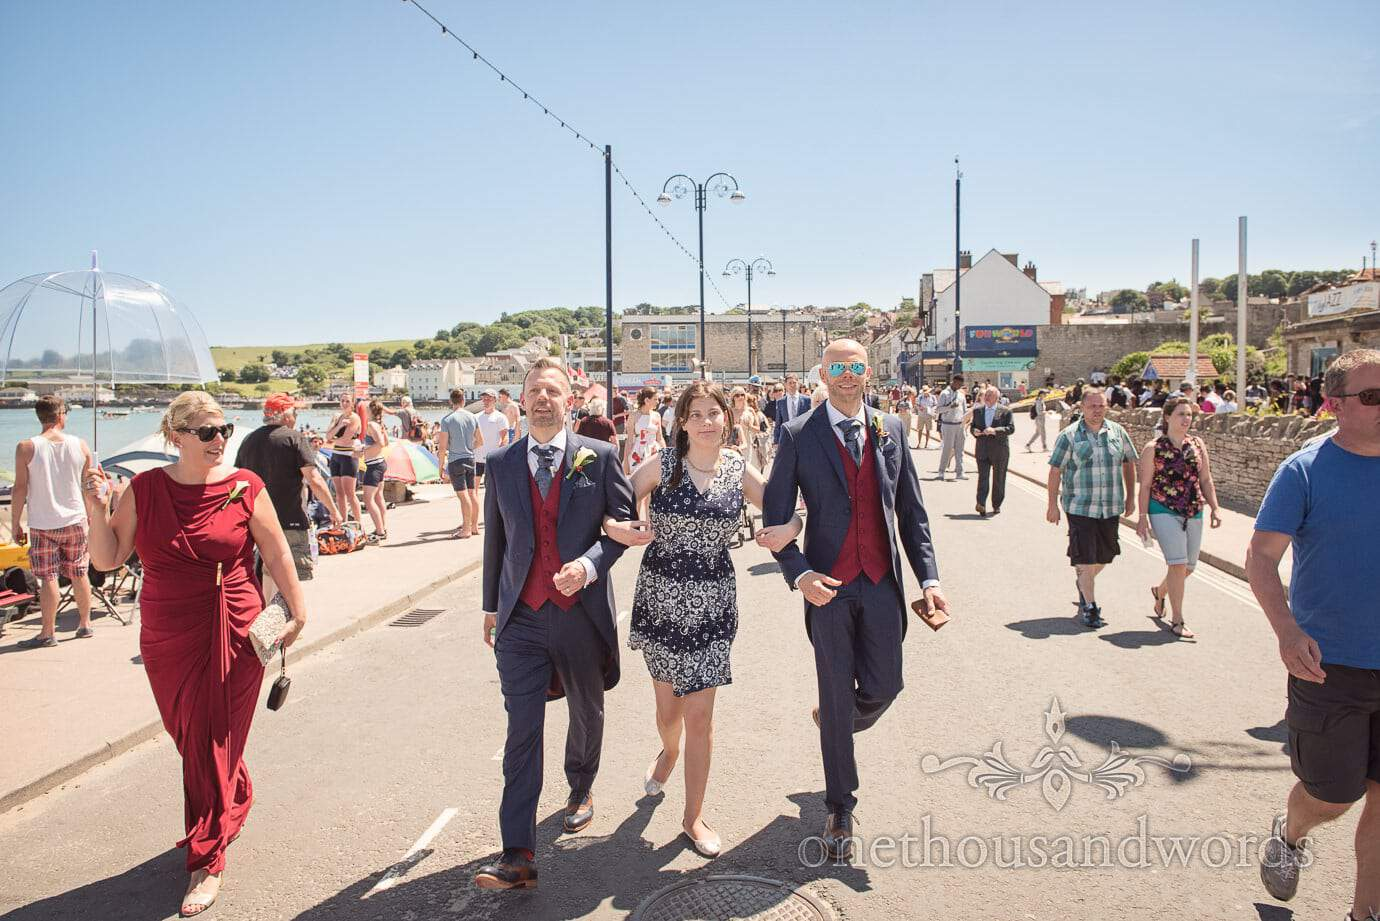 Gay grooms and wedding guests walk along crowded Swanage seafront in summer sun